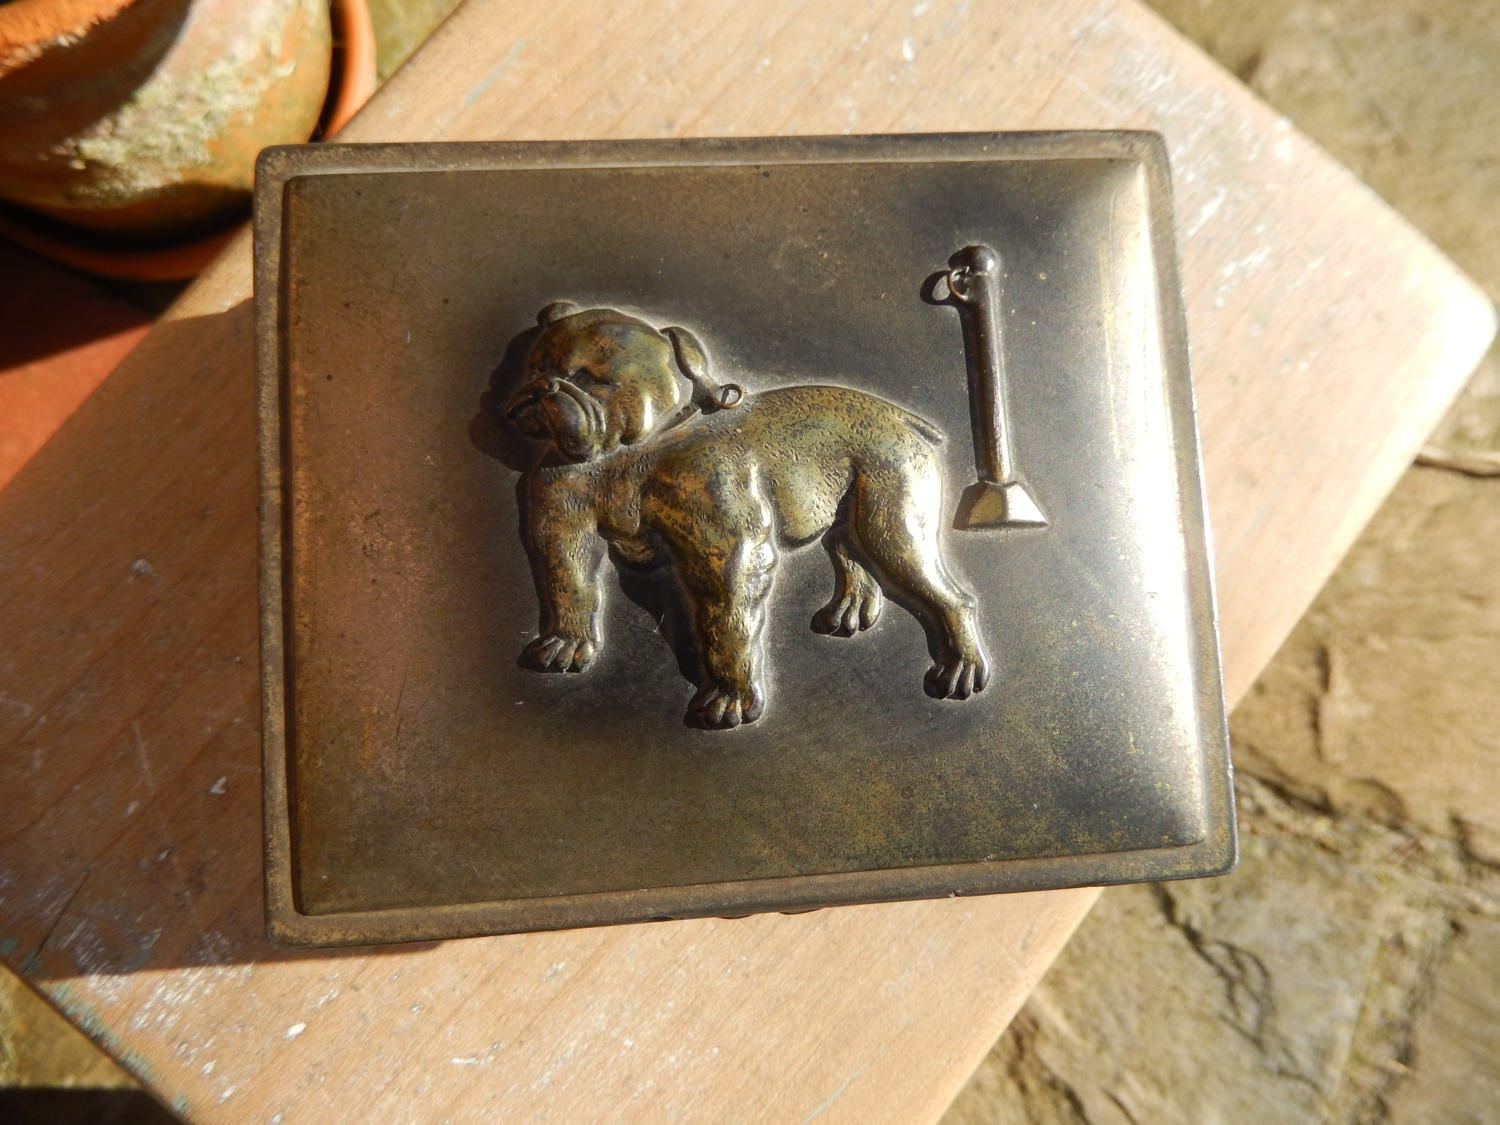 Art Deco British Bulldog Brass Box Bulldog 1930s Brass Trinket Box Art Deco Metal Box Jewellery Box Wood Interior